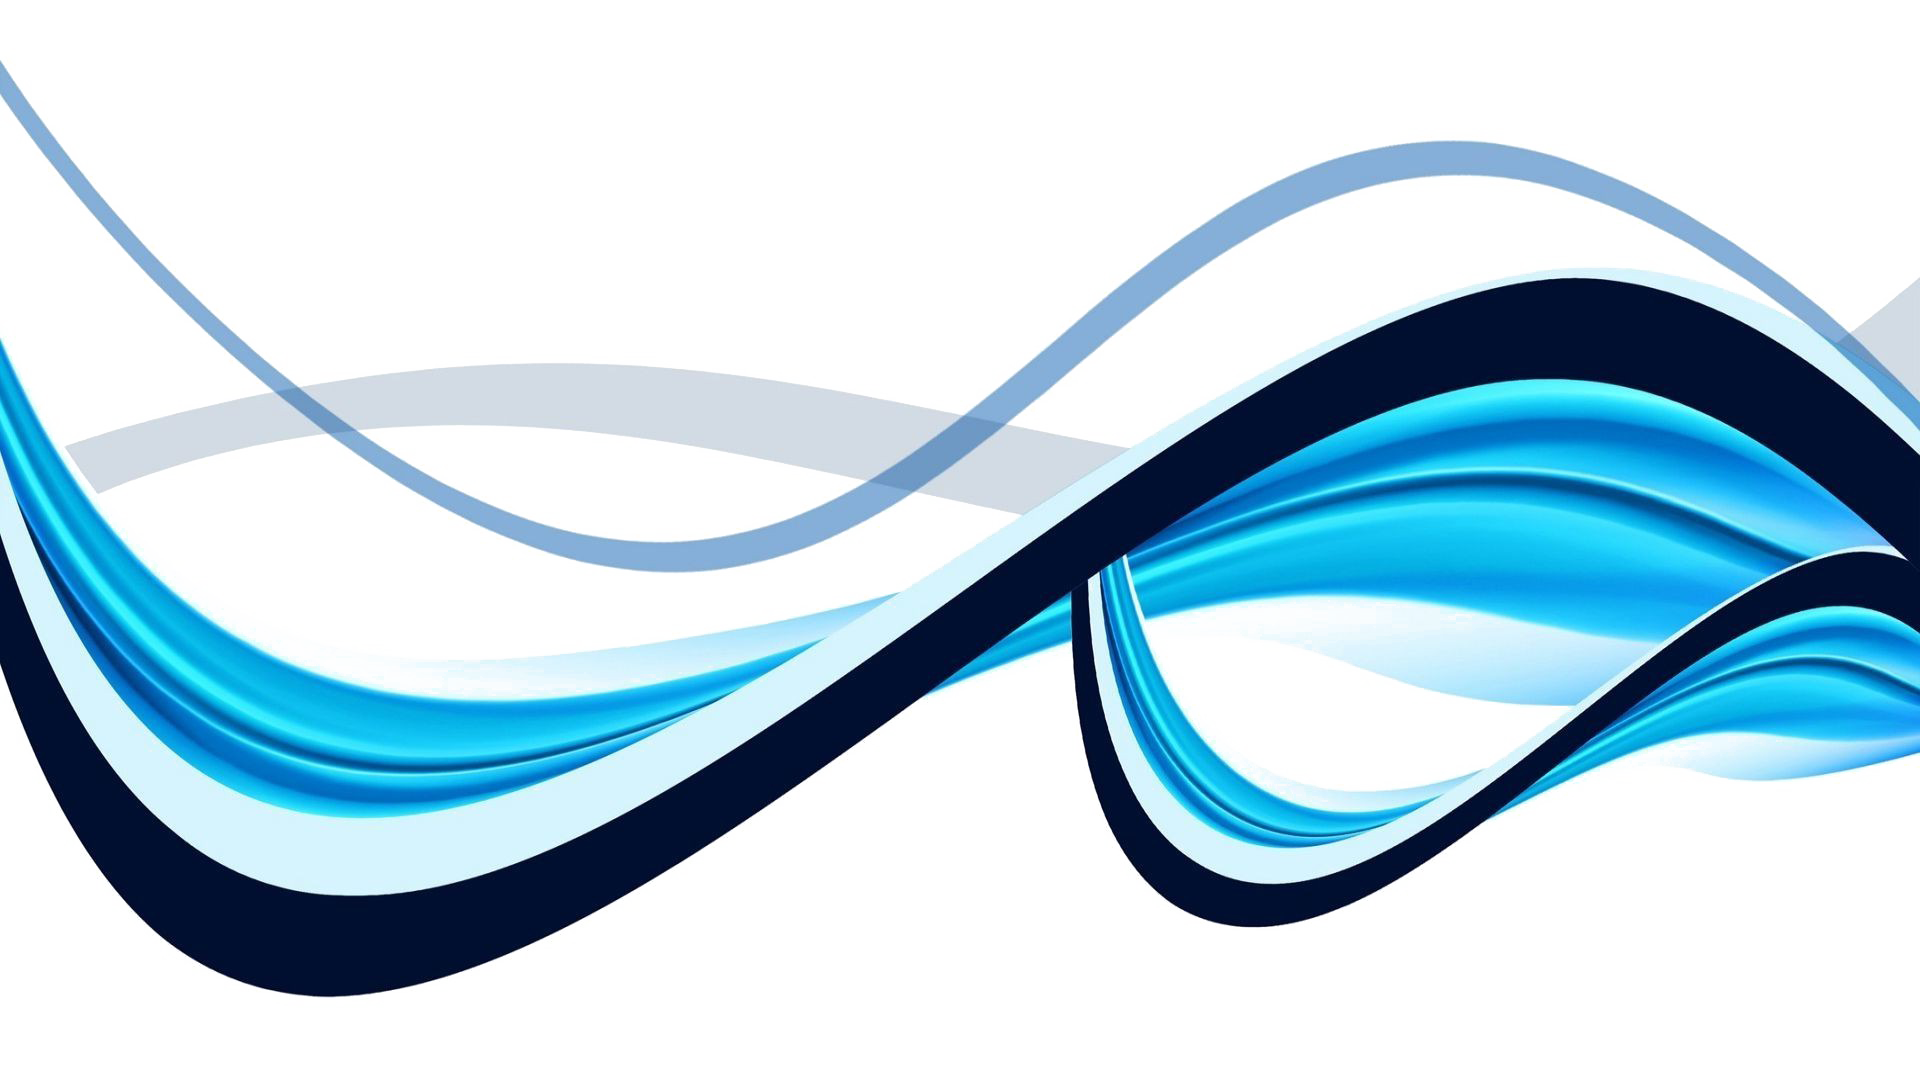 Wave png mart. Waves clipart abstract